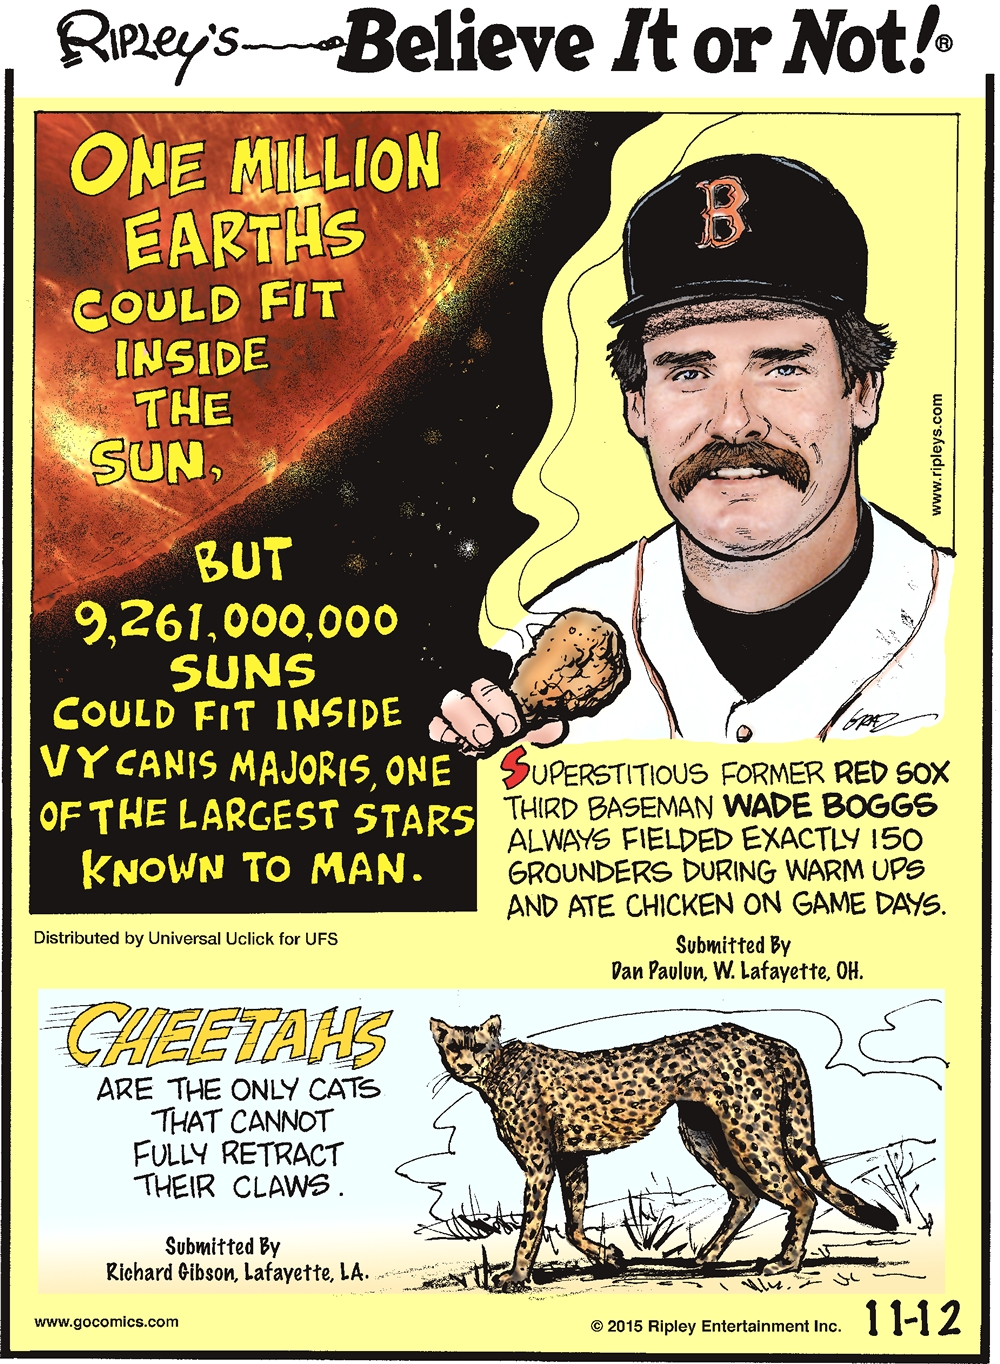 Superstitious former Red Sox third baseman Wade Boggs always fielded exactly 150 grounders during warm ups and ate chicken on game days. (Submitted by Dan Paulun of West Lafayette, Ohio) Cheetahs are the only cats that cannot fully retract their claws. (Submitted by Richard Gibson, Lafayette, LA) One million Earths could fit inside the Sun, but 9,261,000,000 Suns could fit in VY Canis Majoris, the largest star known to man.